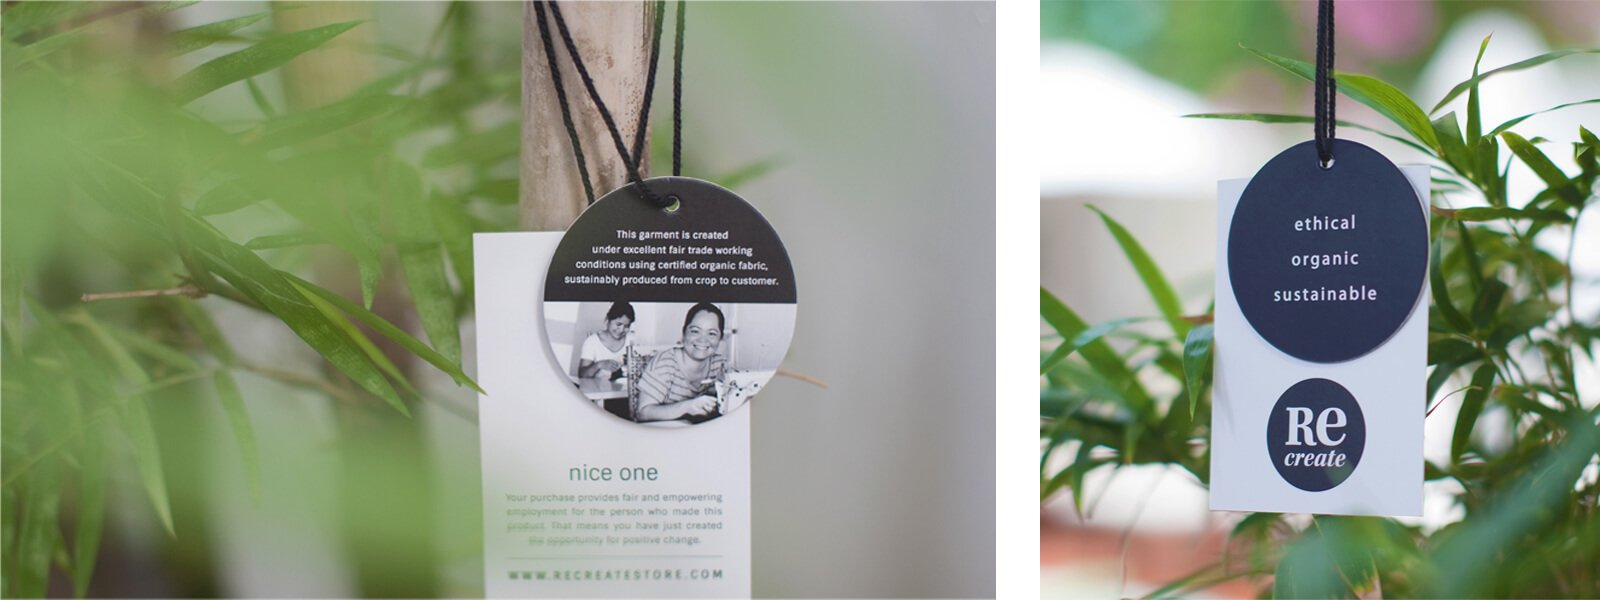 ReCreate: the NZ Fashion Brand Empowering Cambodian Workers